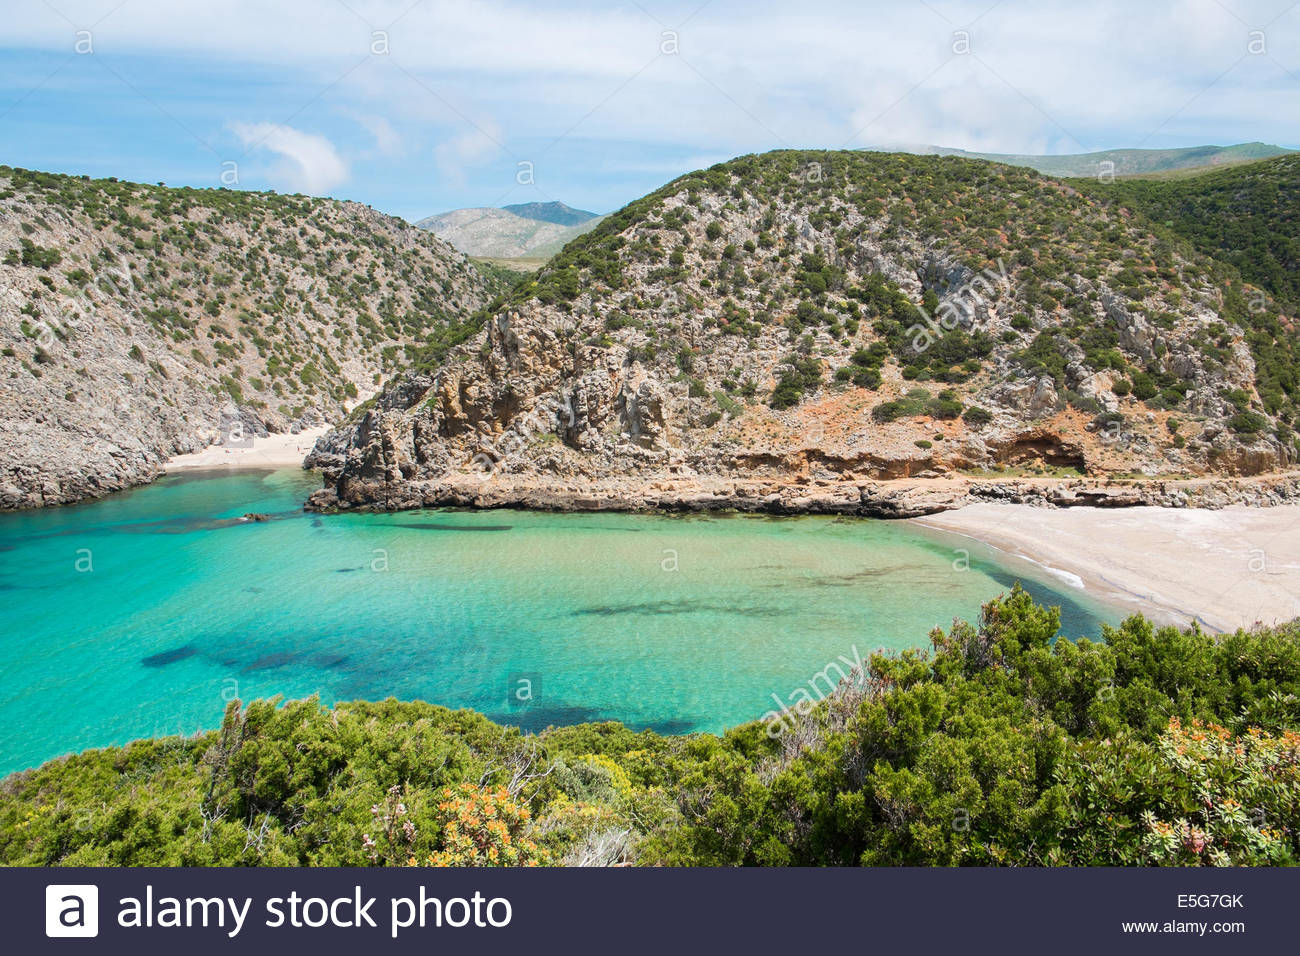 Cala Domestica Beach The Iglesiente, Cala Domestica beach and promontory, isolated and wild beach along ...